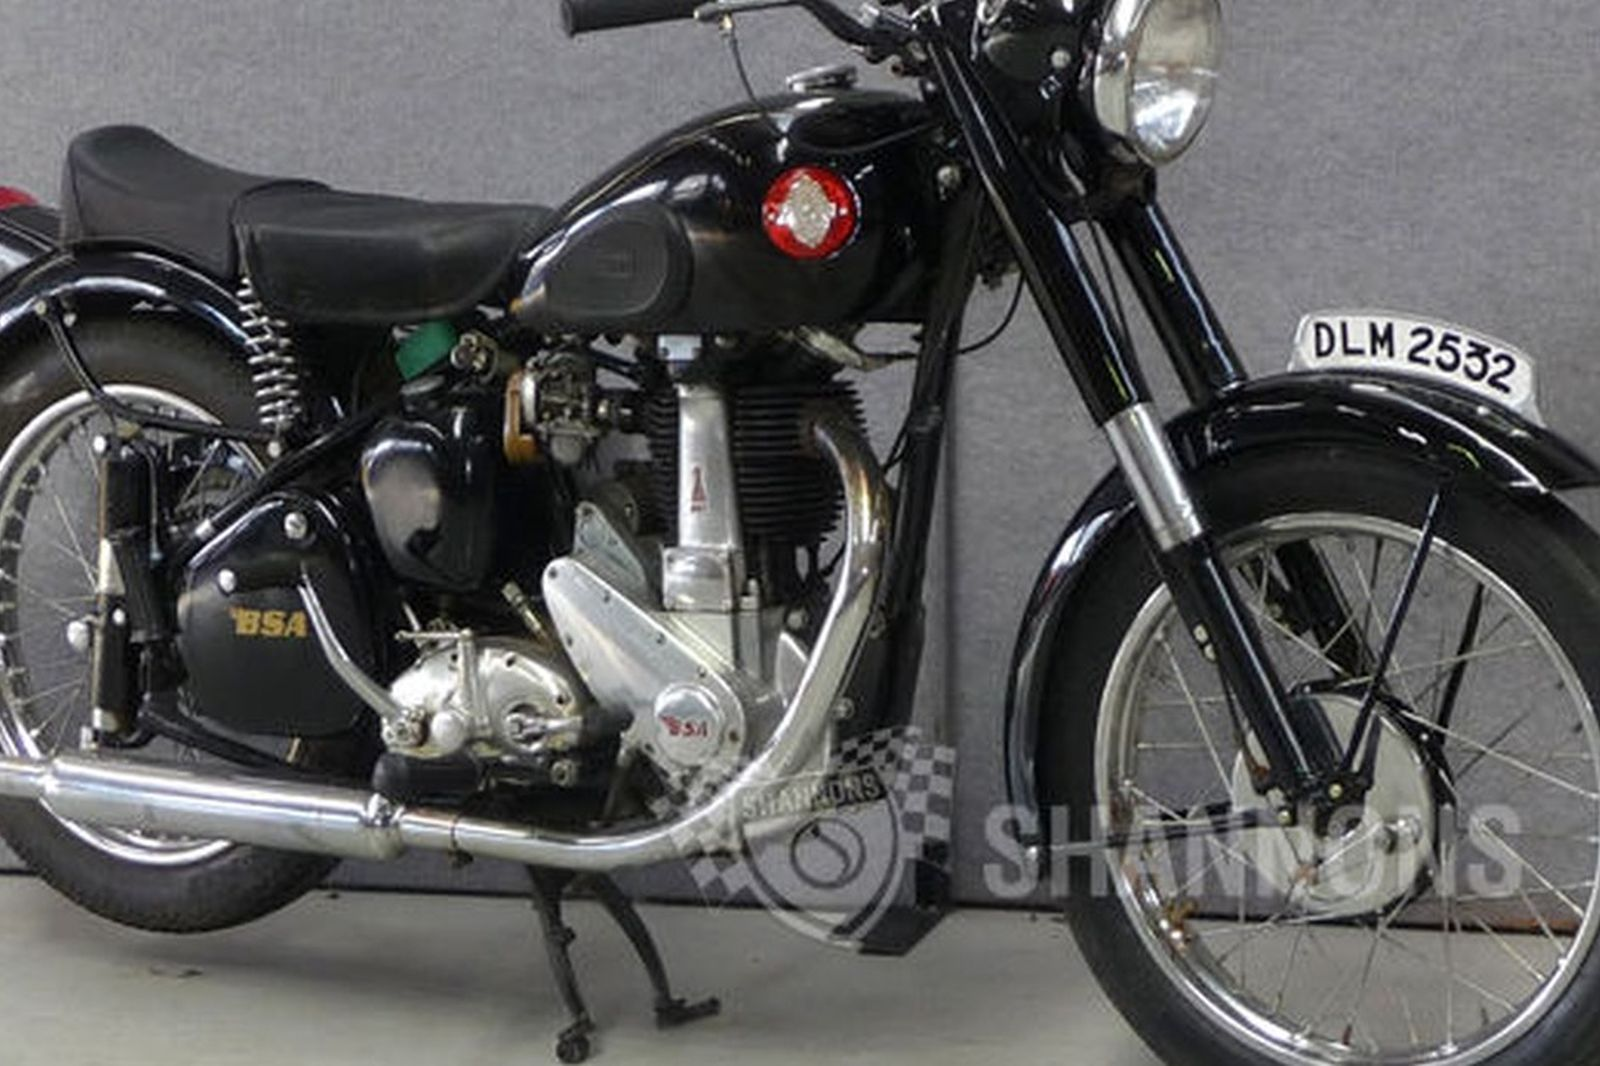 BSA B31 350cc Motorcycle